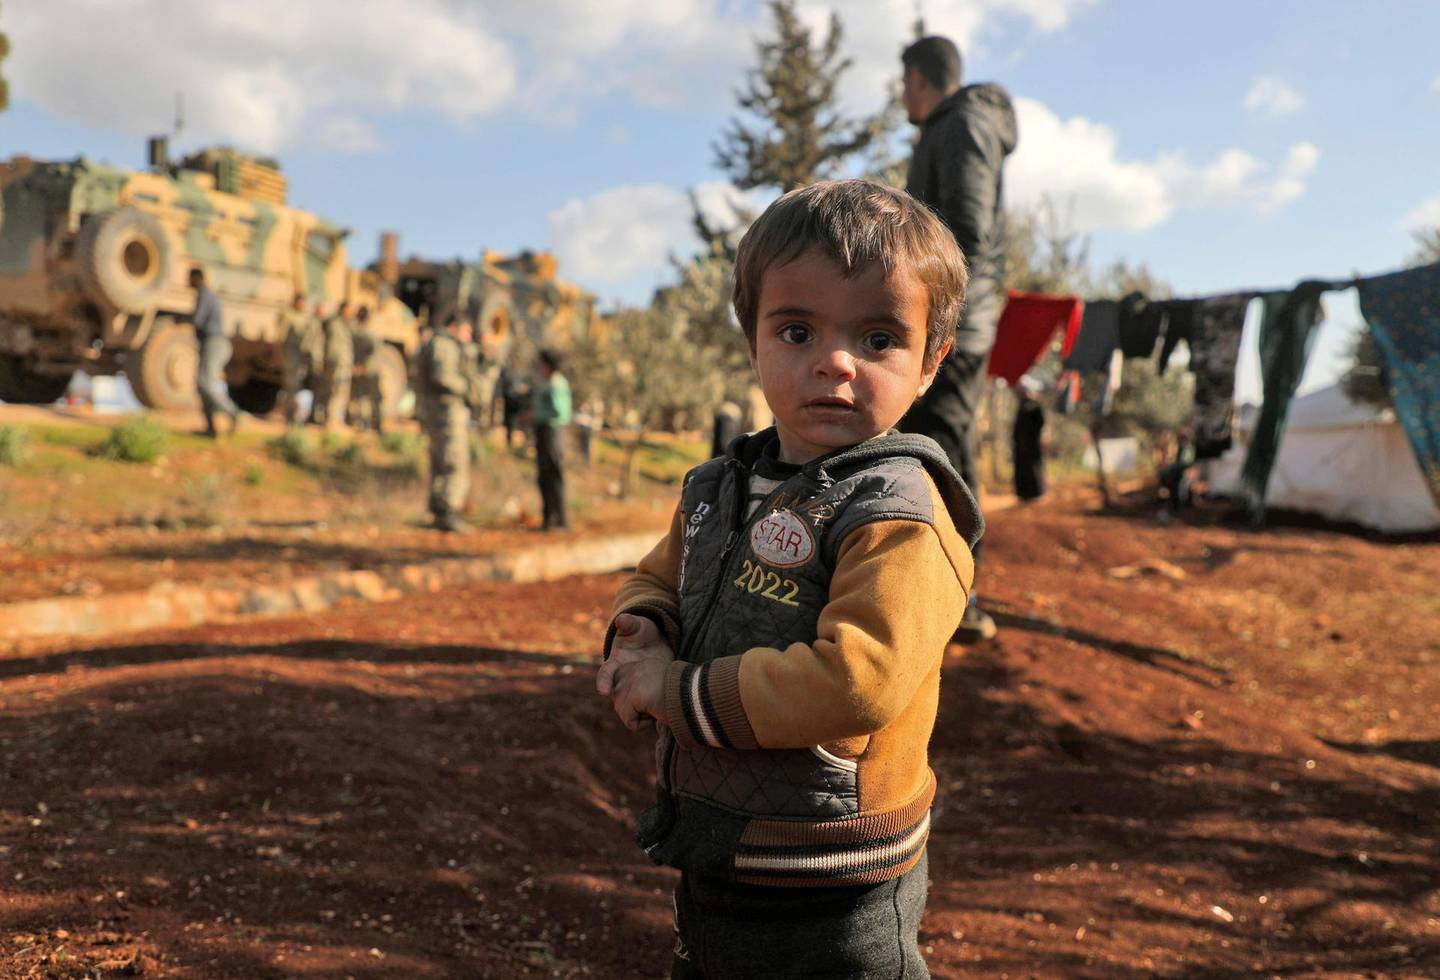 A displaced Syrian child looks to the camera as Turkish soldiers gather near the town of Batabu on the highway linking Idlib to the Syrian Bab al-Hawa border crossing with Turkey, on March 2, 2020. The Syrian government pledged to repel Turkish forces attacking its Russia-backed troops in northwestern Syria as tensions spike between Damascus and Ankara. Since December, Syrian regime forces have led a deadly military offensive against the last major opposition stronghold of Idlib, where Turkey supports some rebel groups. Damascus said it shot down three Turkish drones in the region the day before, while two Syrian warplanes were downed though the pilots escaped unharmed. / AFP / AAREF WATAD